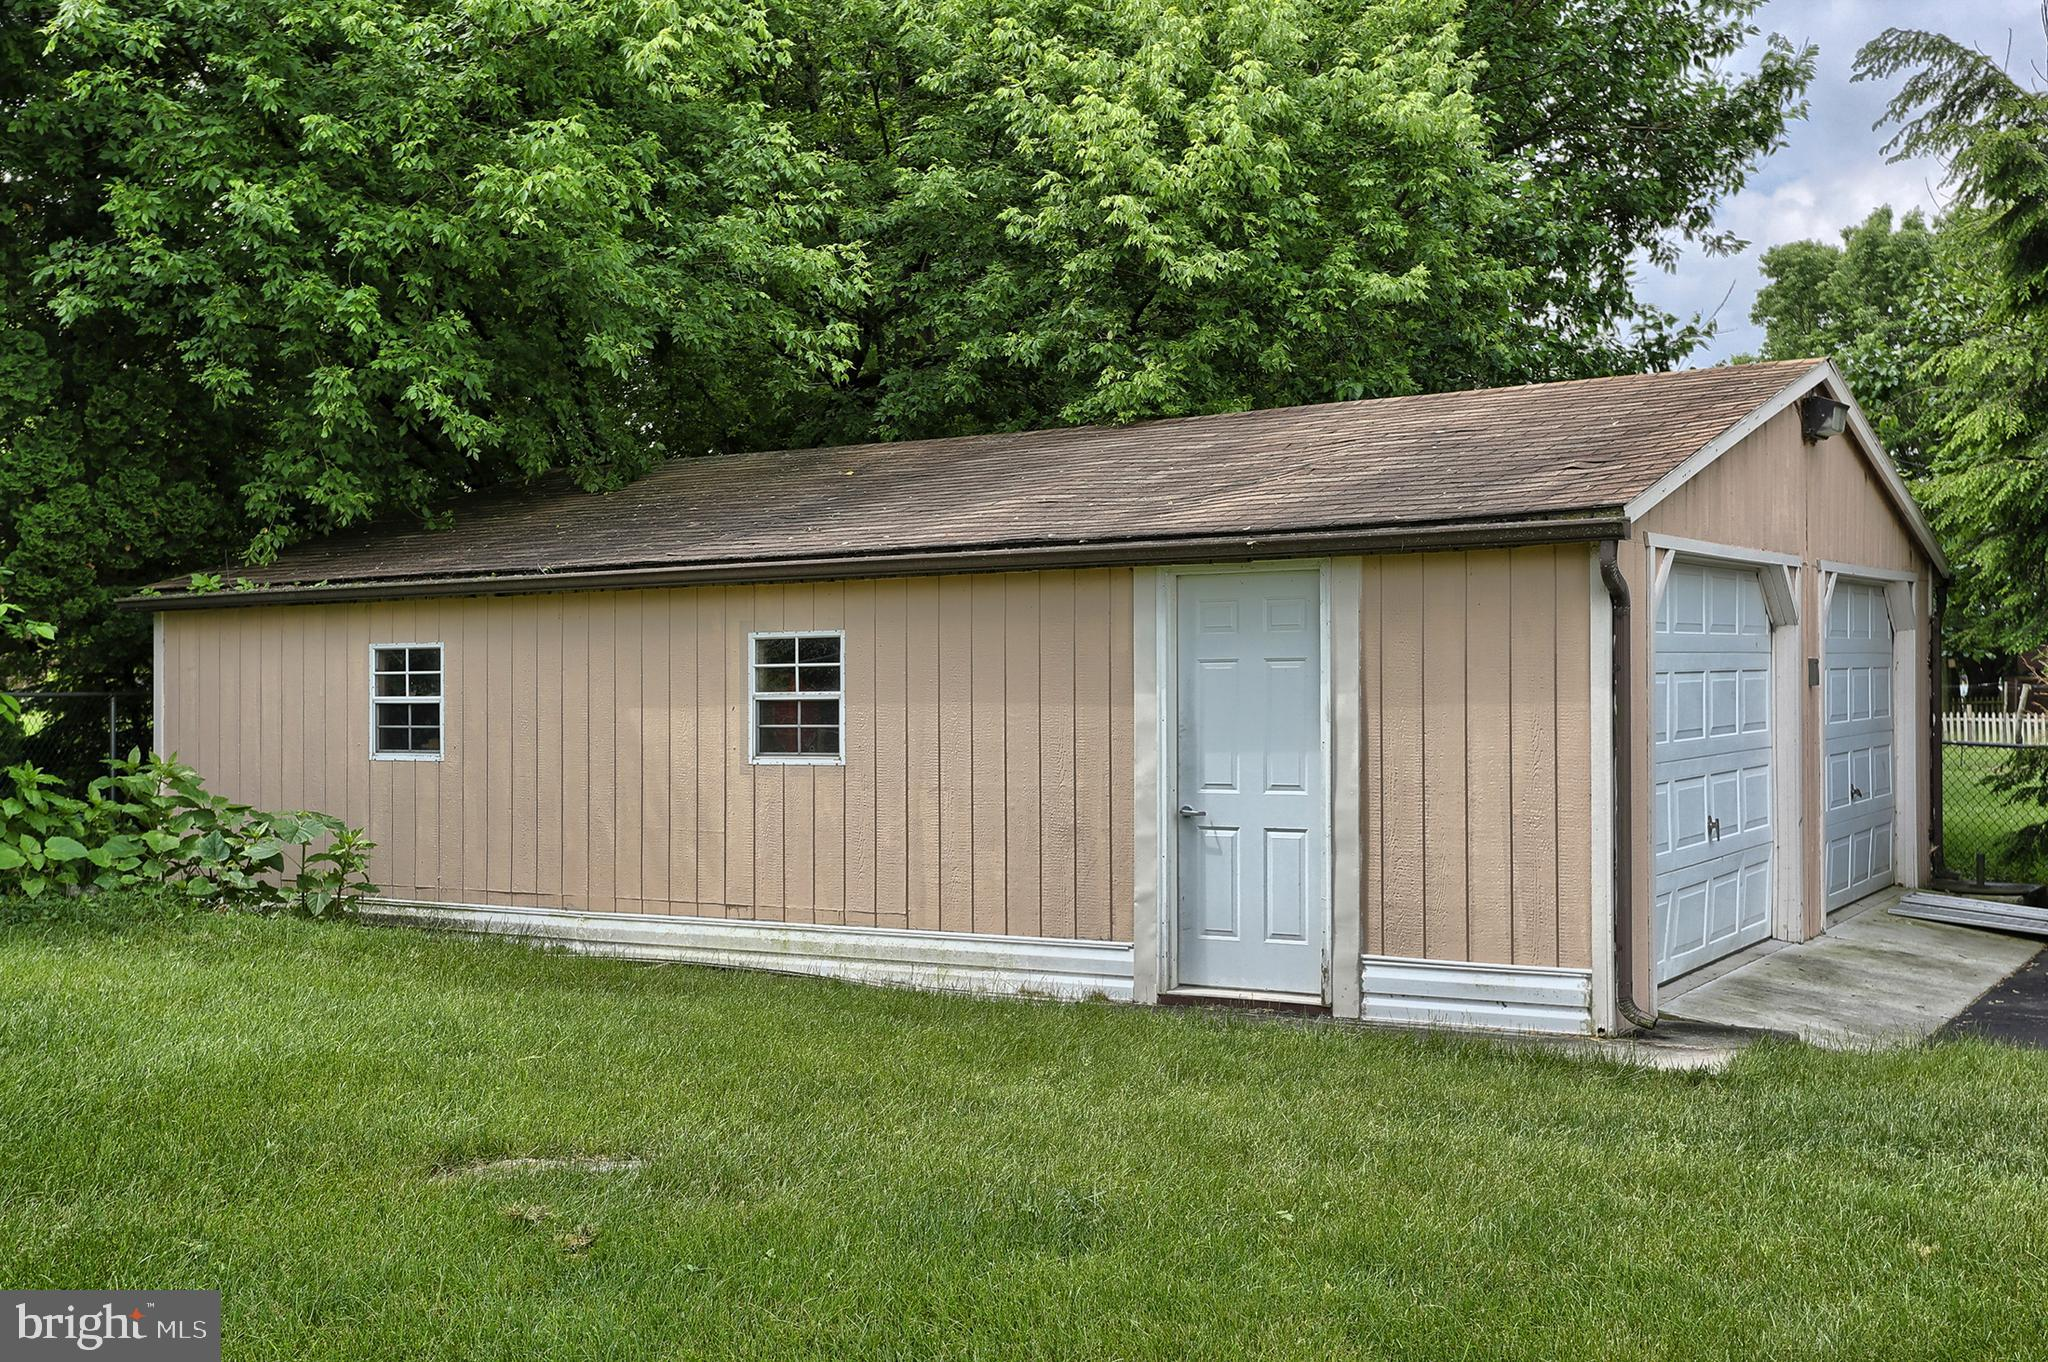 fourth garage on west side of property